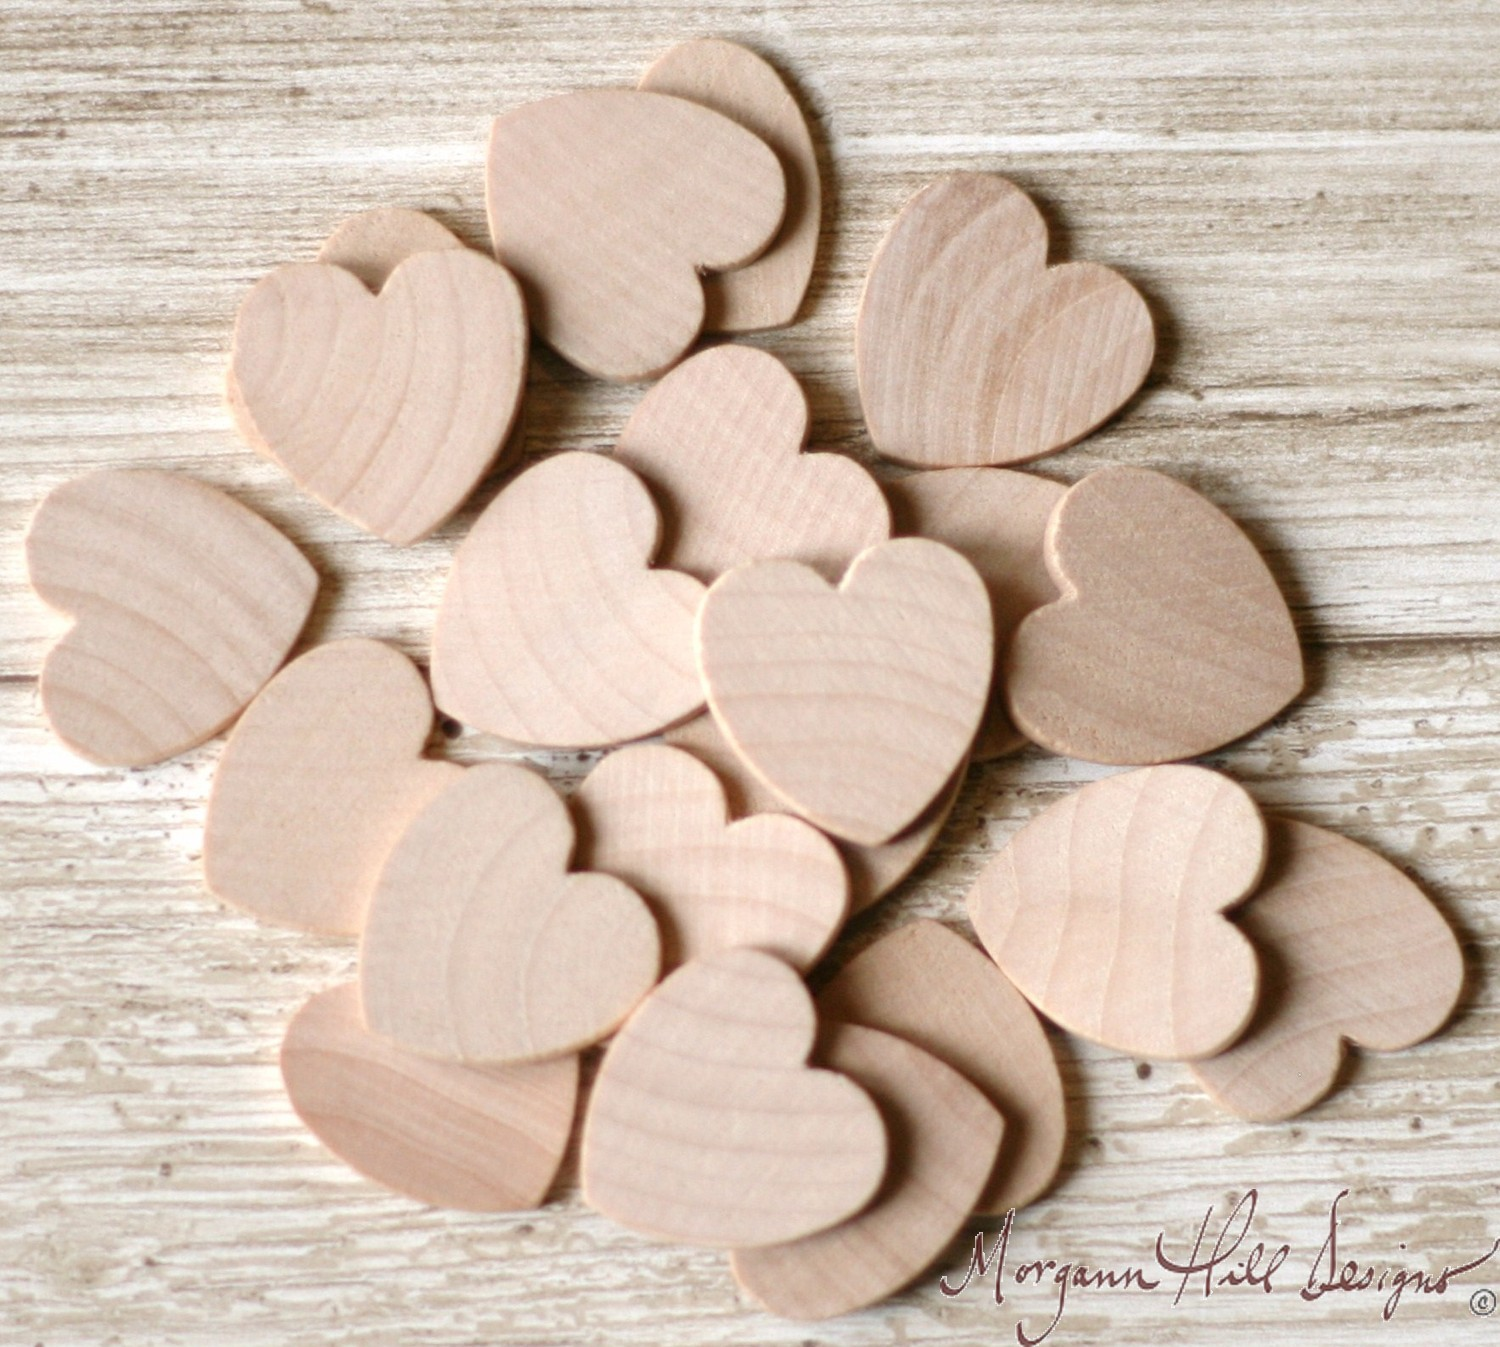 Unfinished wood craft pieces - Wood Heart Unfinished Wood Craft Supplies Diy Wedding Rustic Chic Item Number 140057